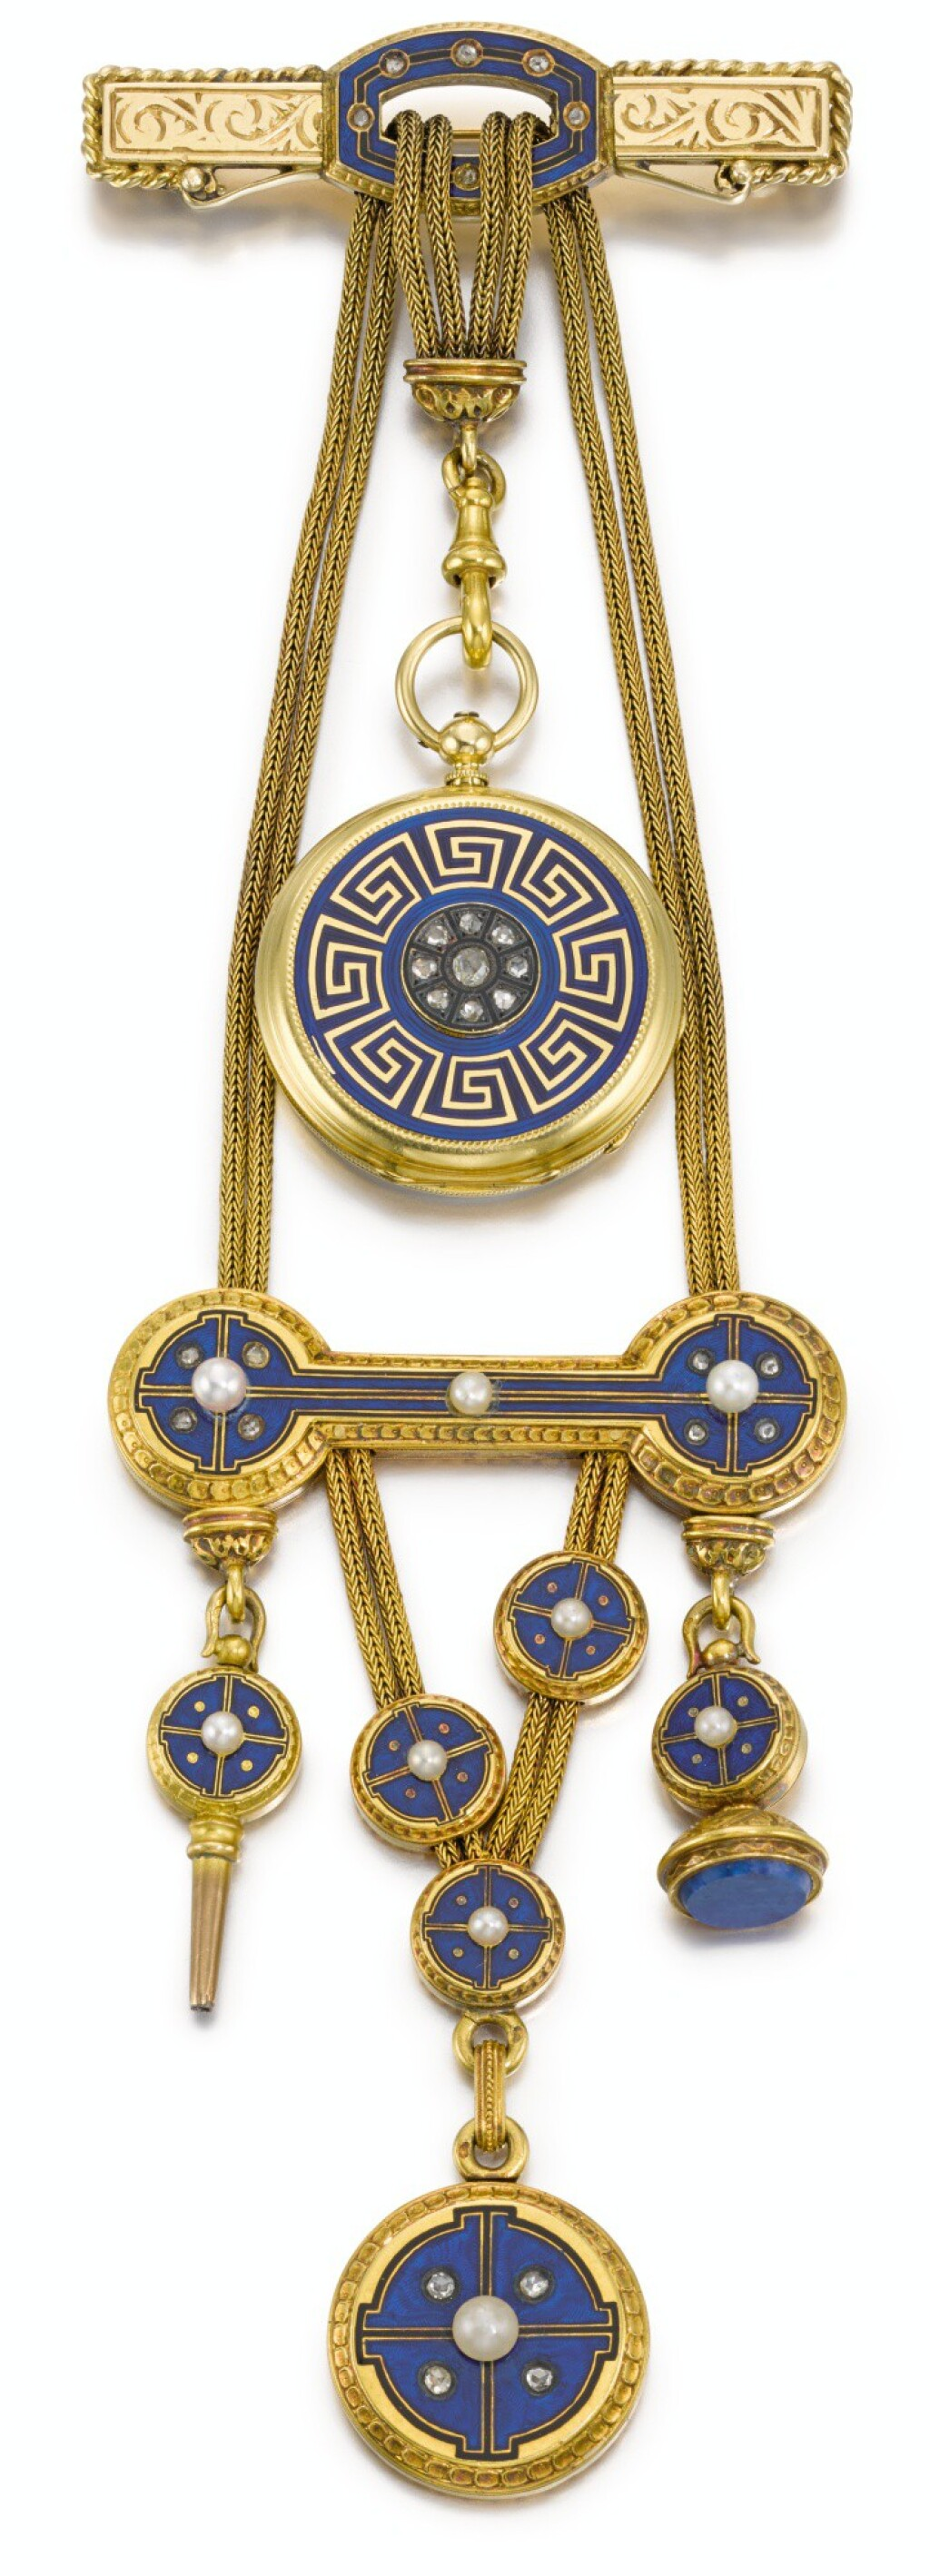 CHARLES OUDIN |  A GOLD, ENAMEL, DIAMOND AND SEED PEARL-SET OPEN-FACED WATCH WITH BAR BROOCH PIN AND CHATELAINE CIRCA 1820